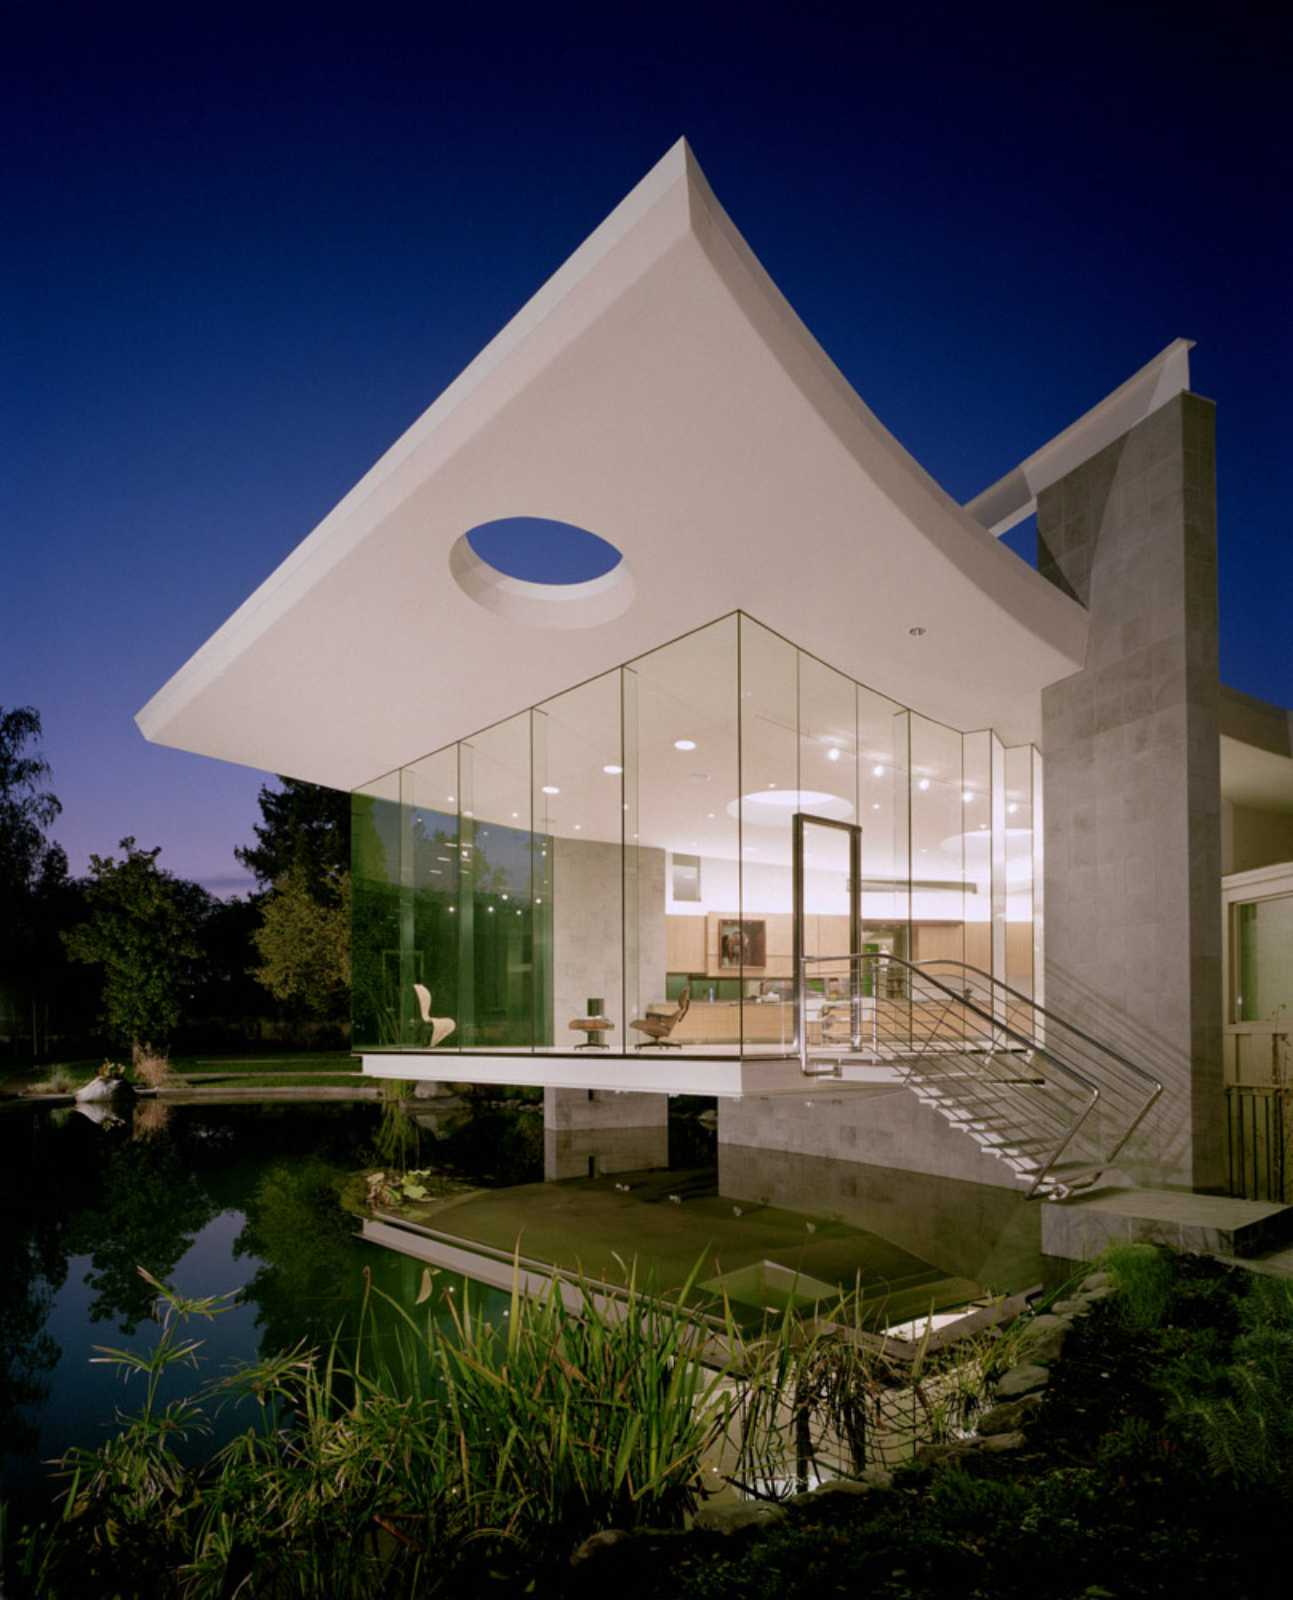 Exterior House Patterns: LAKESIDE STUDIO BY MARK DZIEWULSKI ARCHITECT